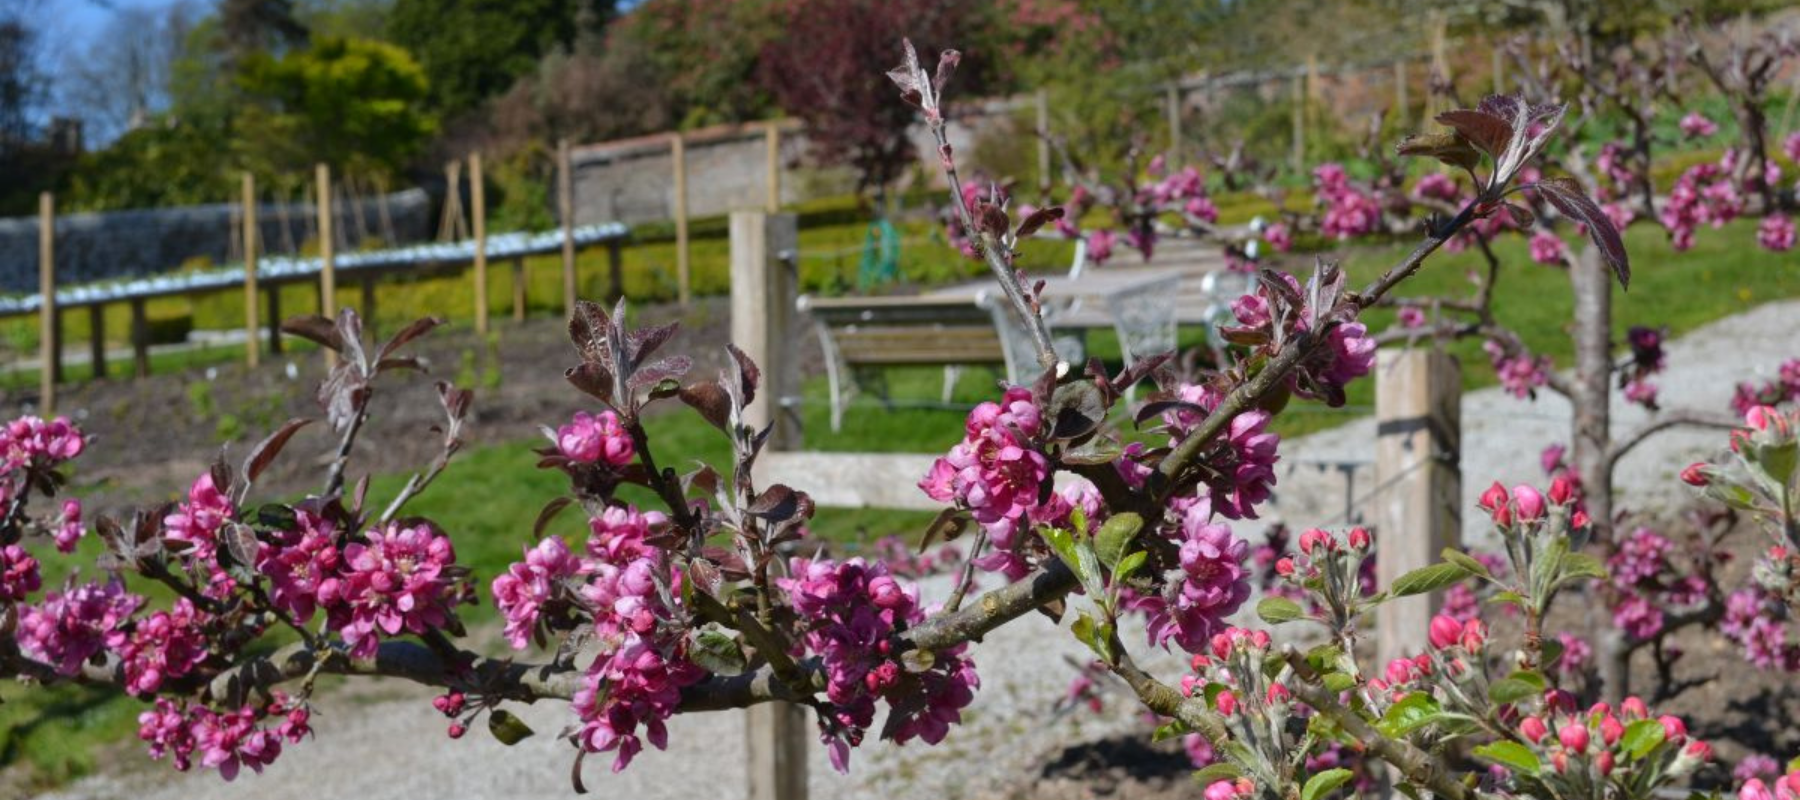 A close up of some pink flowers with the walled garden blurred in the background